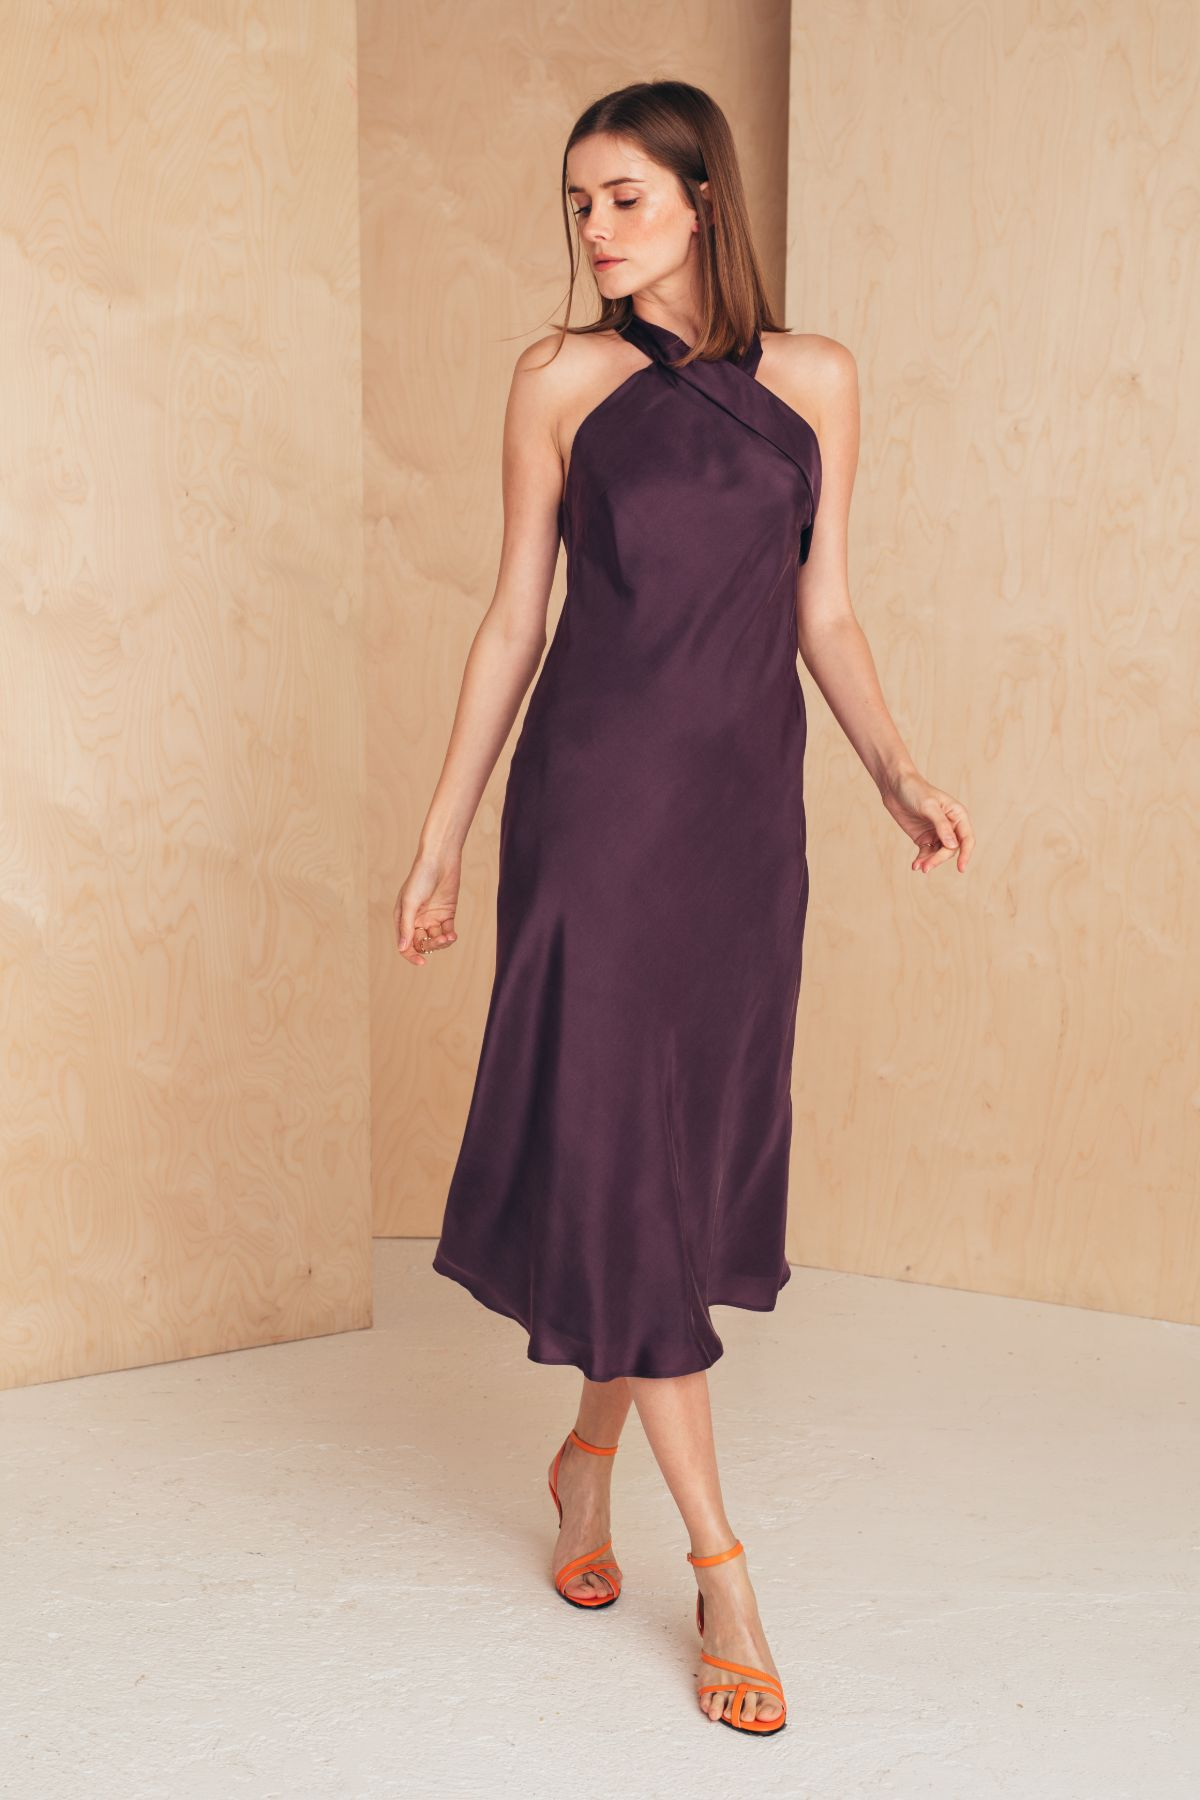 Halter Neck Silk Dress Dresses from MIONÈ curated by pu·rist